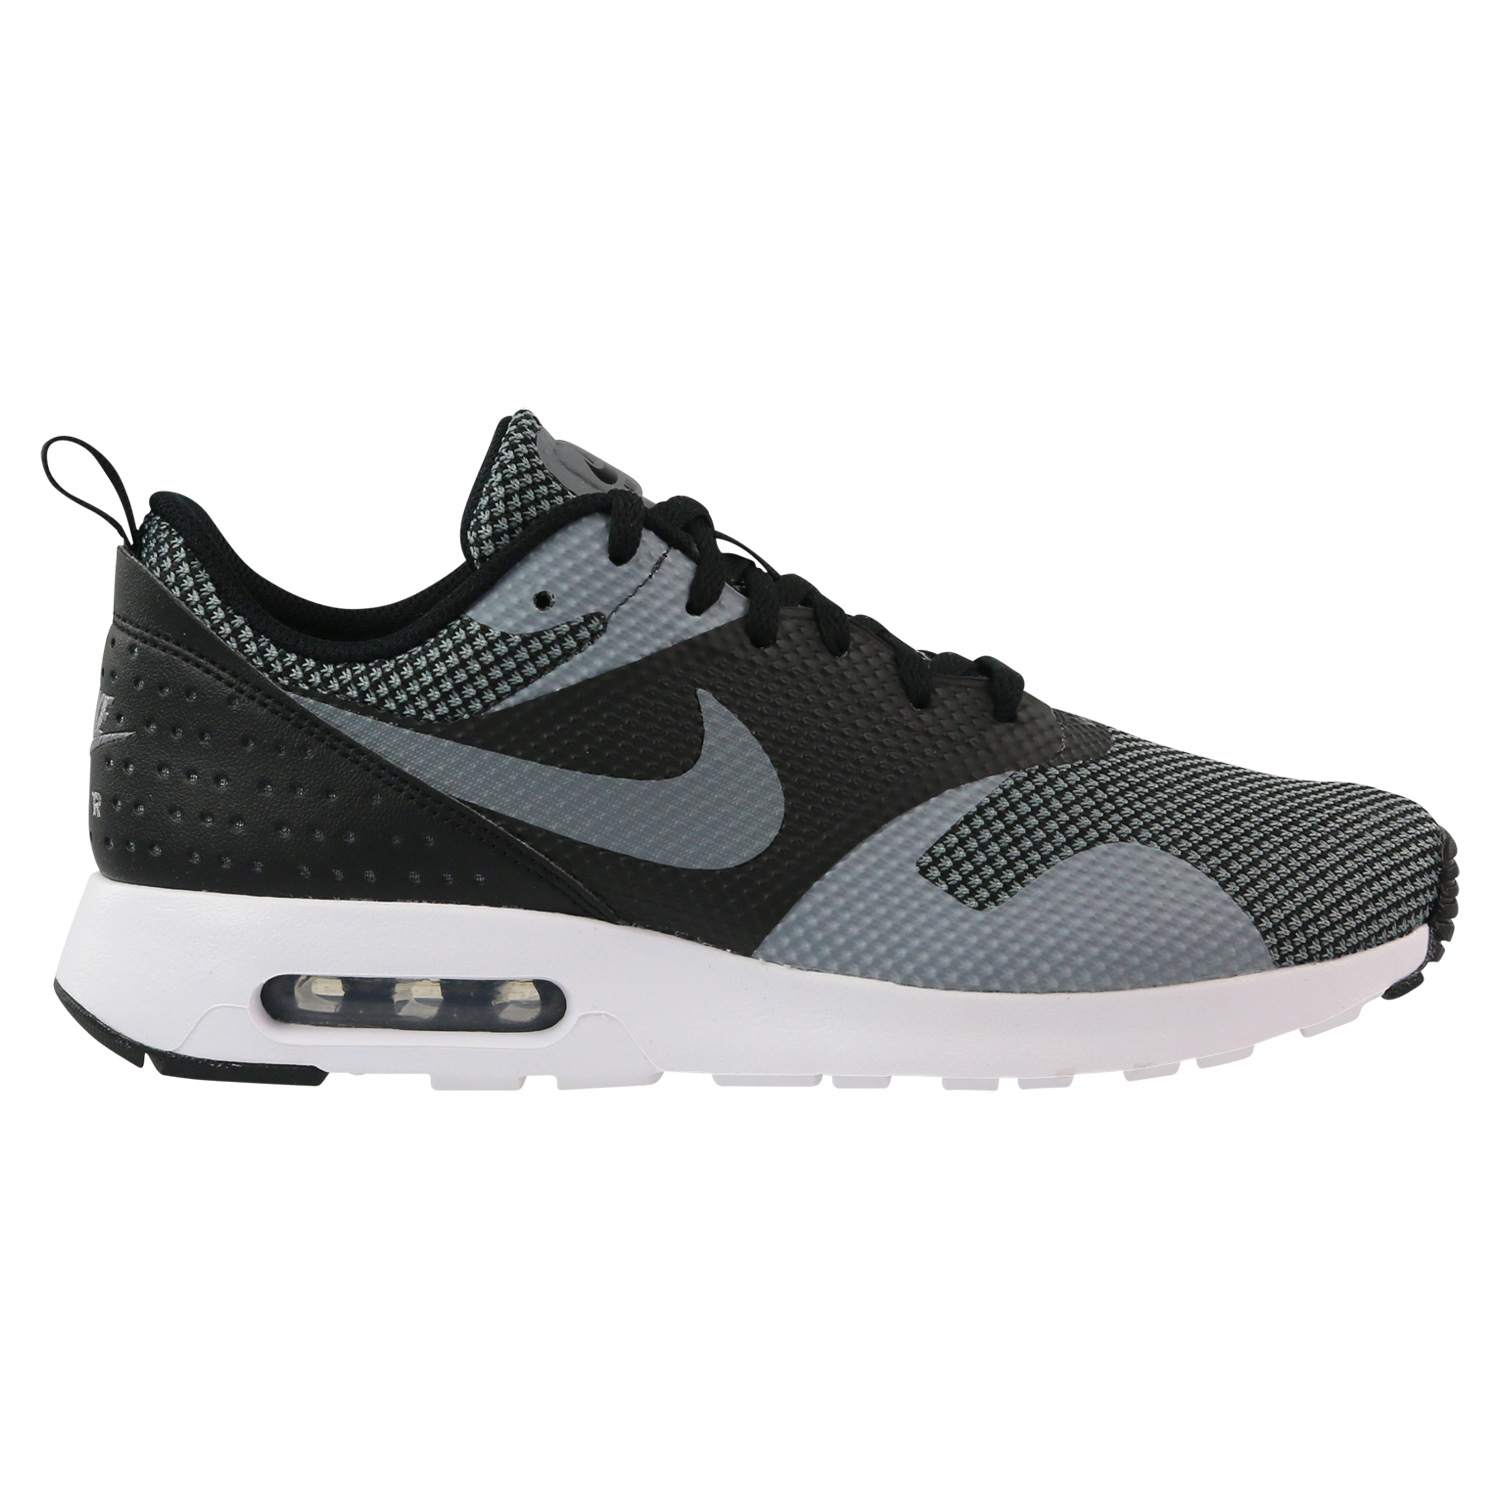 nike air max tavas schuhe turnschuhe sneaker herren ebay. Black Bedroom Furniture Sets. Home Design Ideas